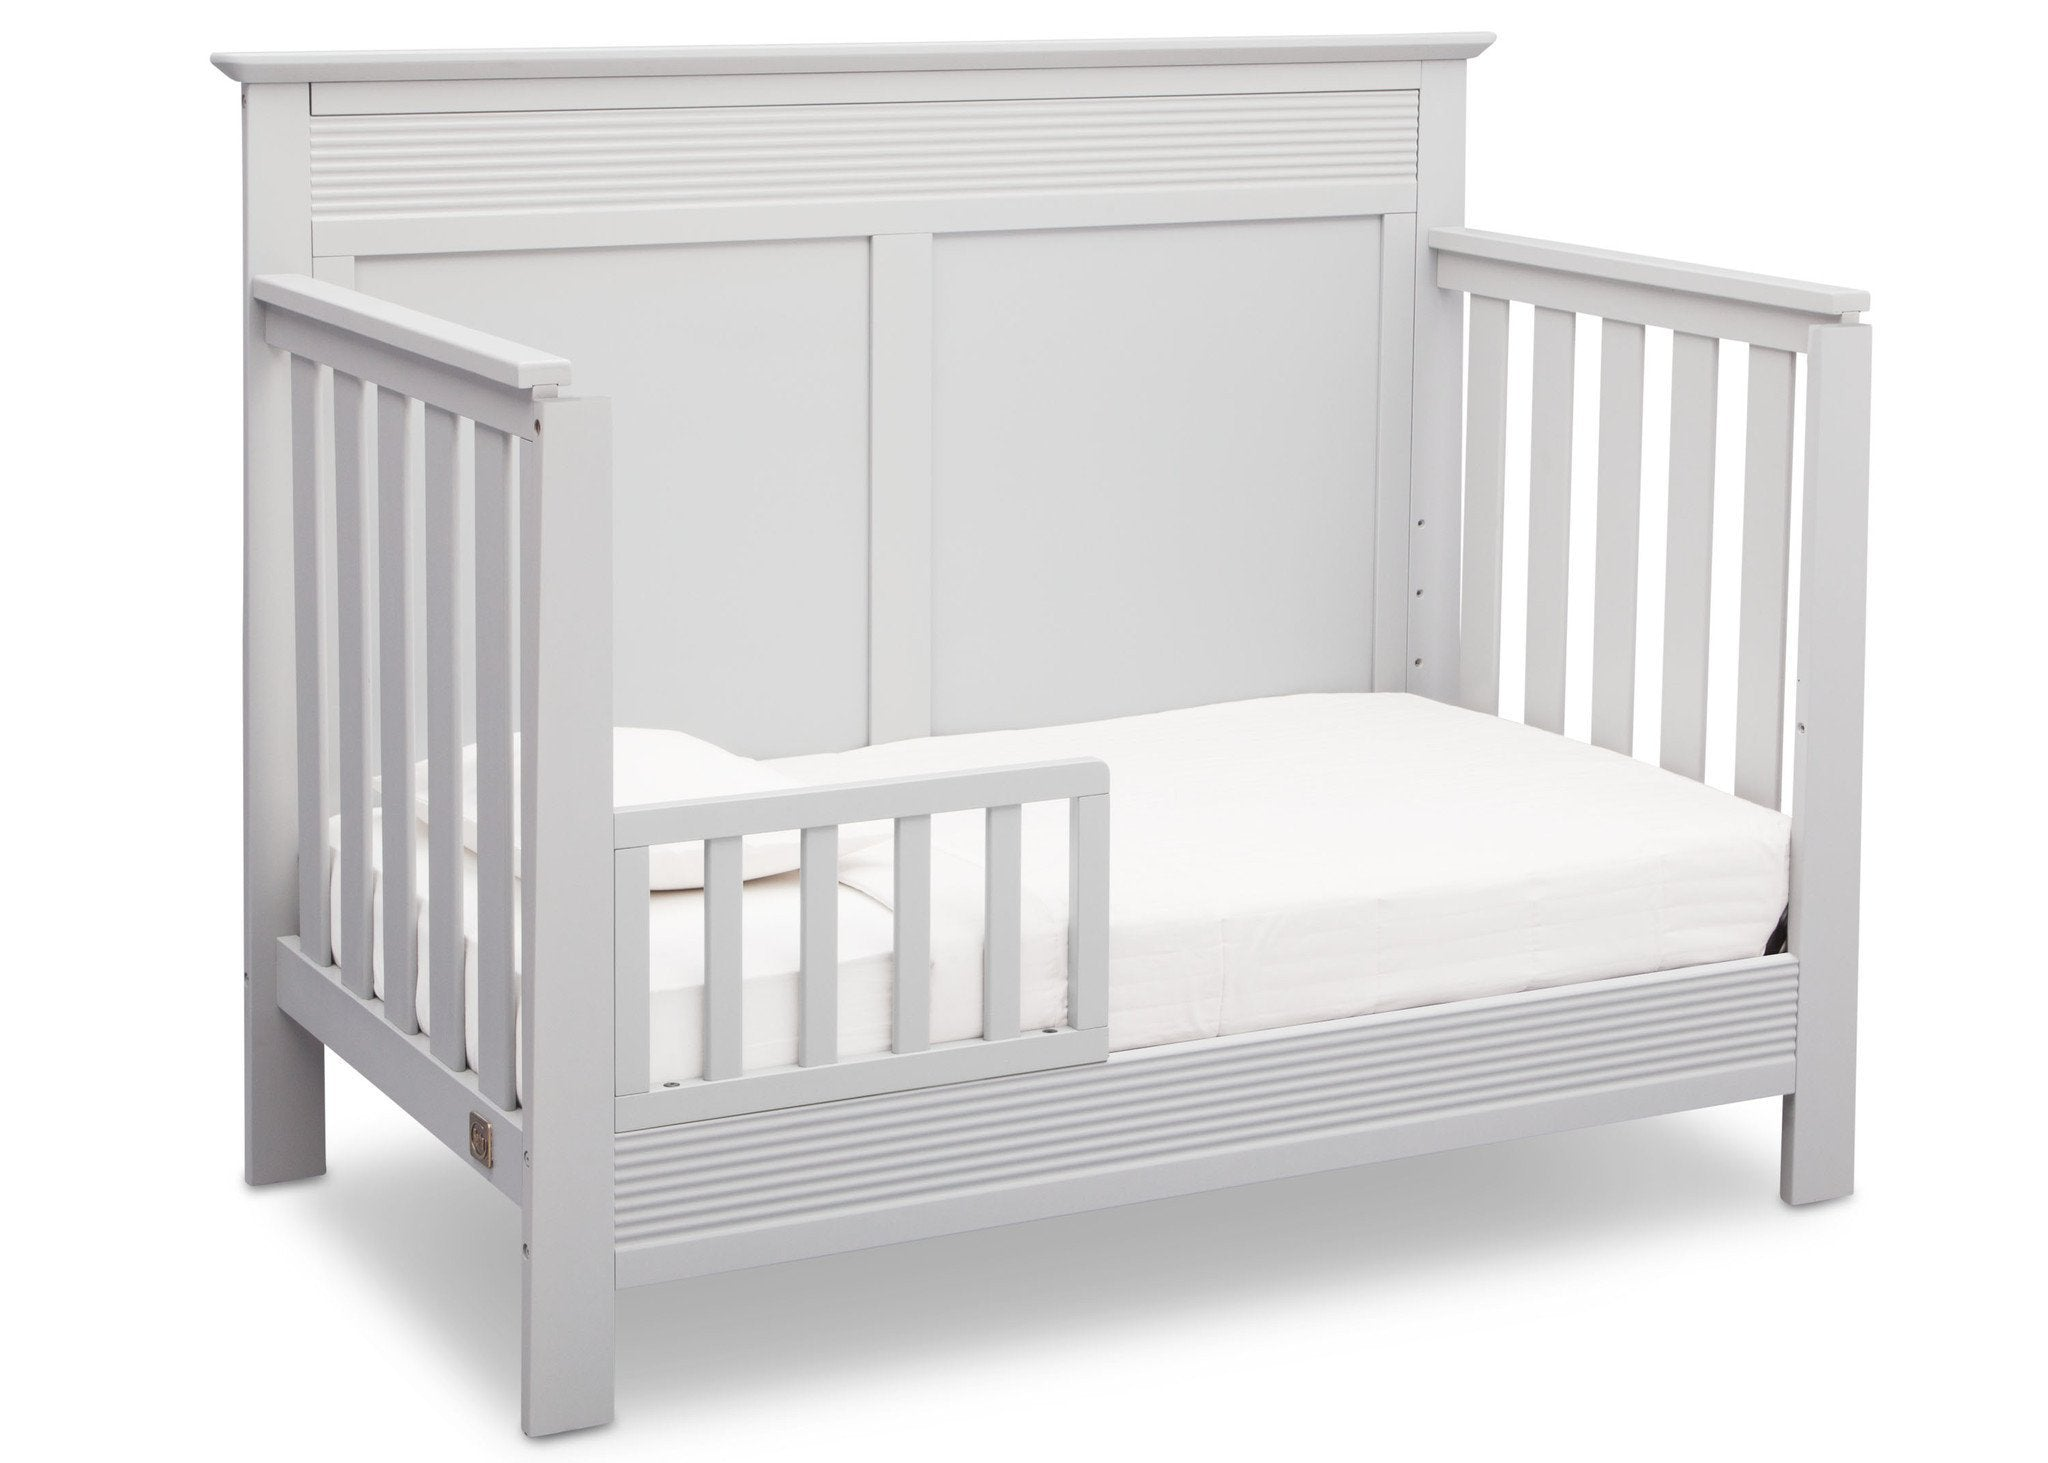 Serta Bianca White (130) Fall River 4-in-1 Convertible Crib, Right Toddler Bed View b3b